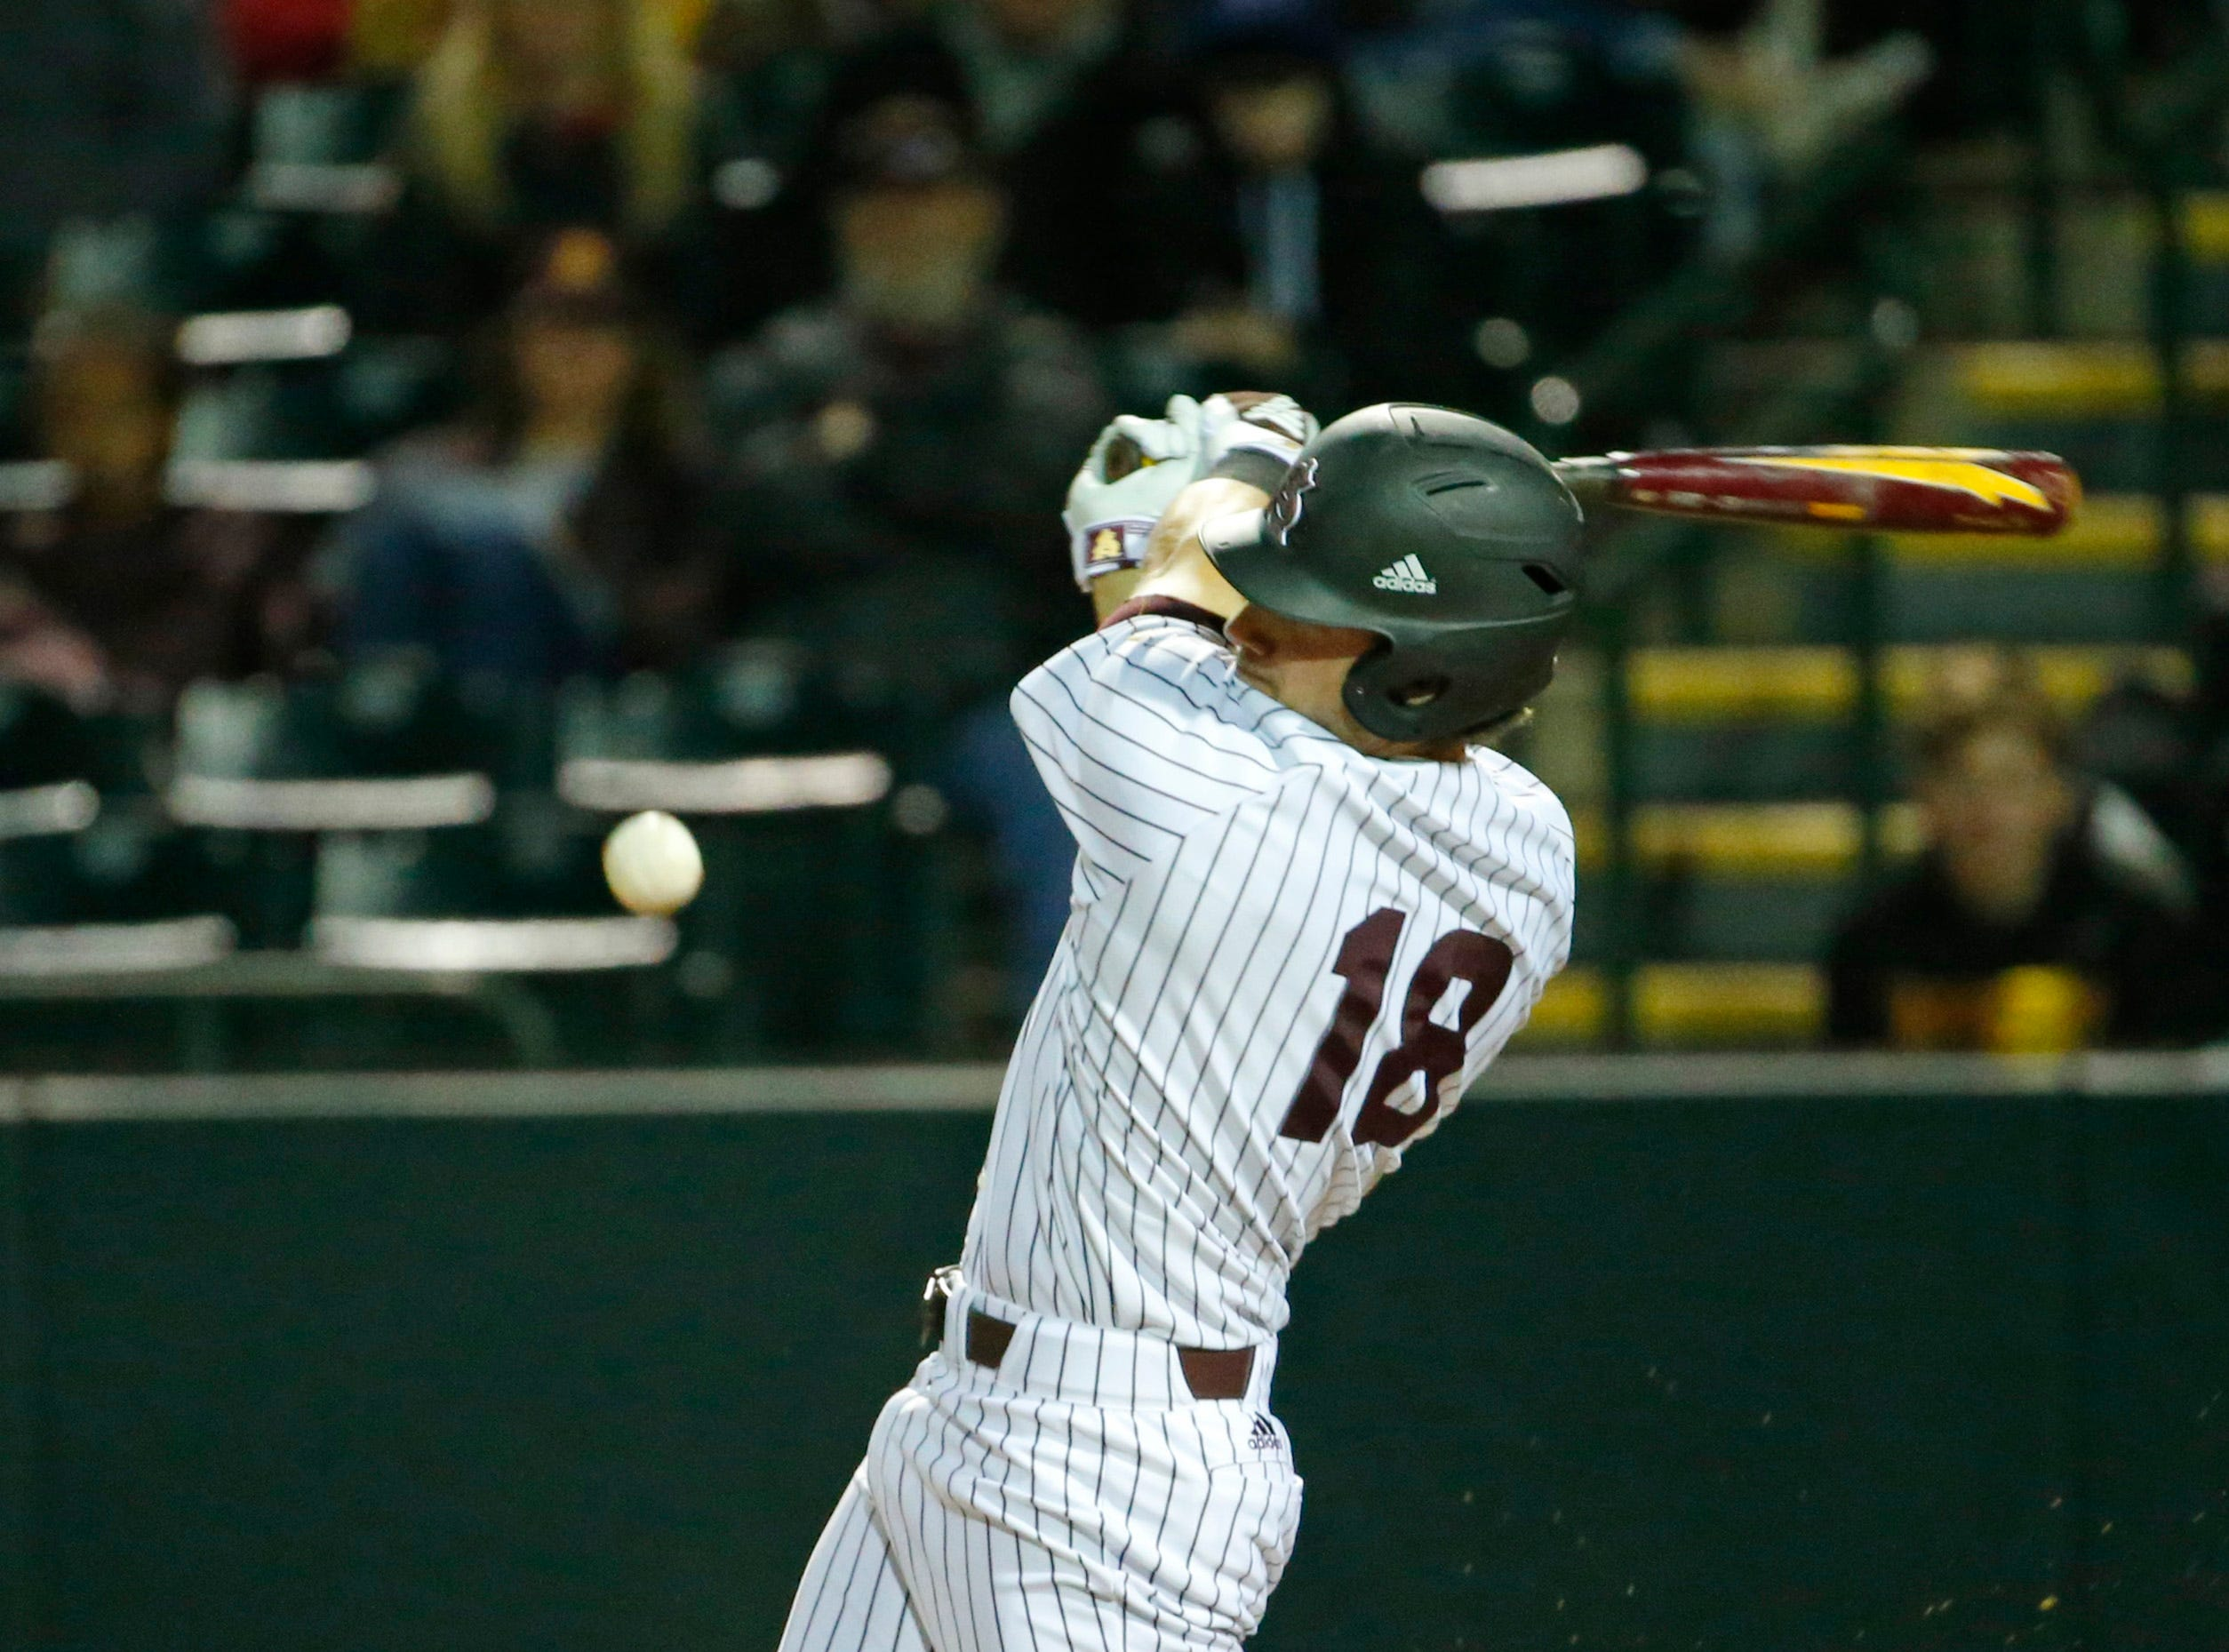 ASU left fielder Trevor Hauver (18) at bat during a baseball game against New Mexico at Phoenix Municipal Stadium on March 13, 2019.